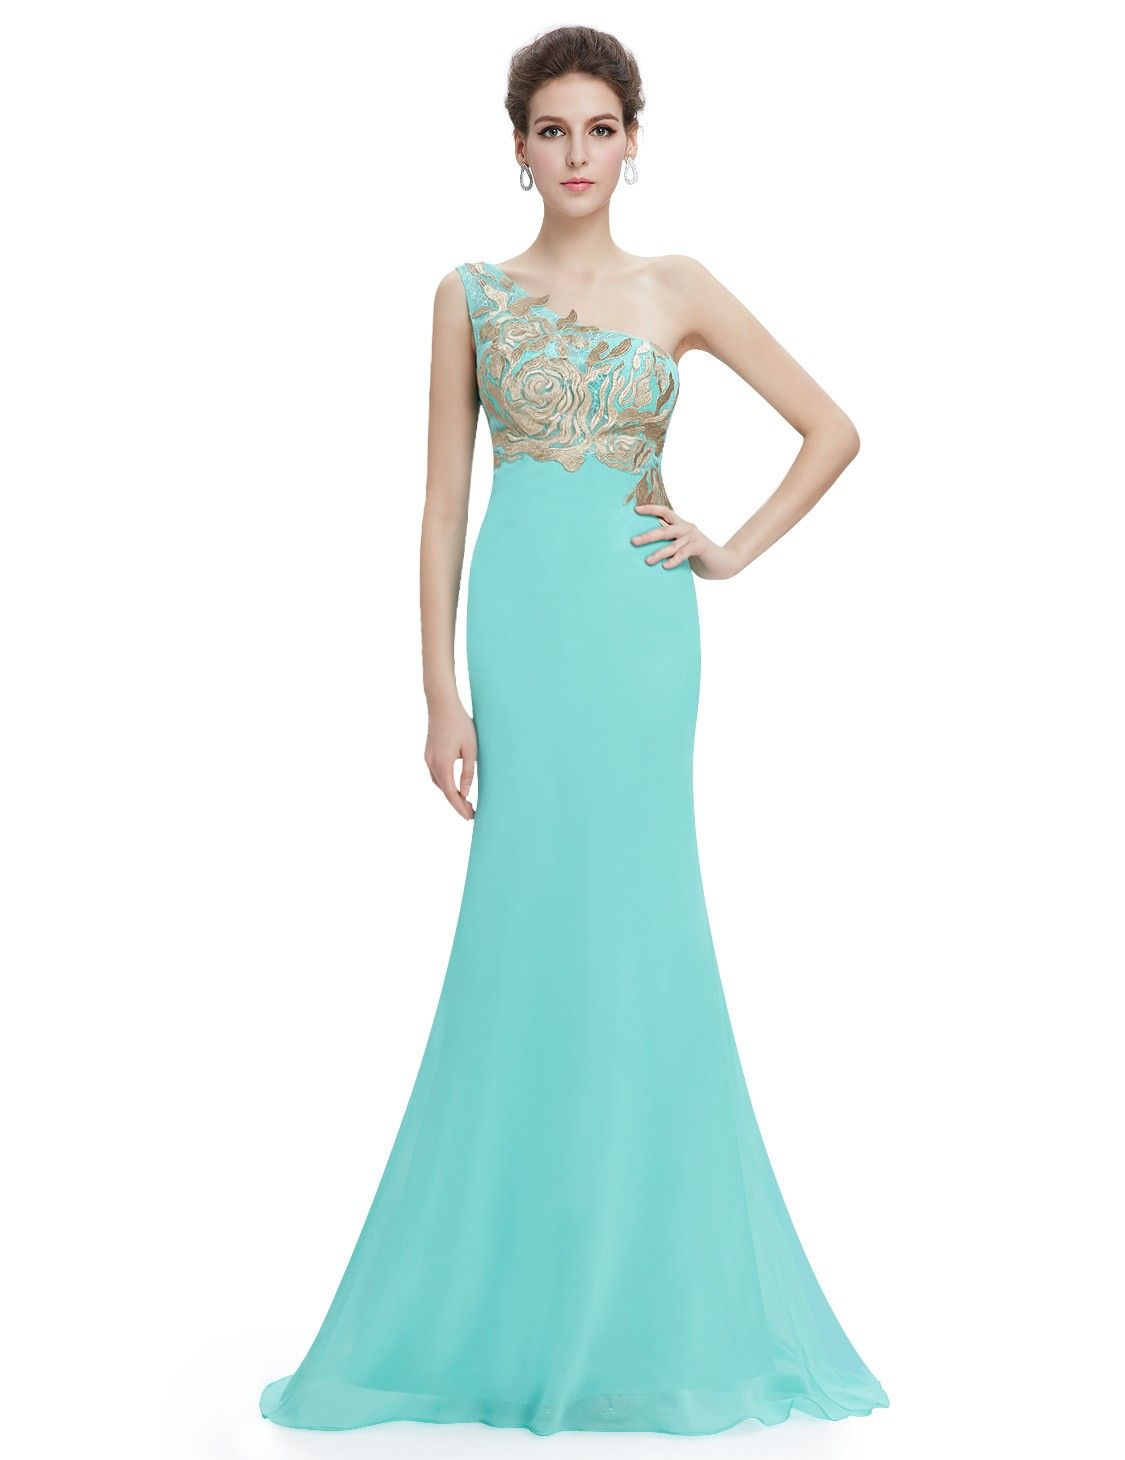 One Shoulder Light Blue Evening Dress #everpretty | Evening Dresses ...